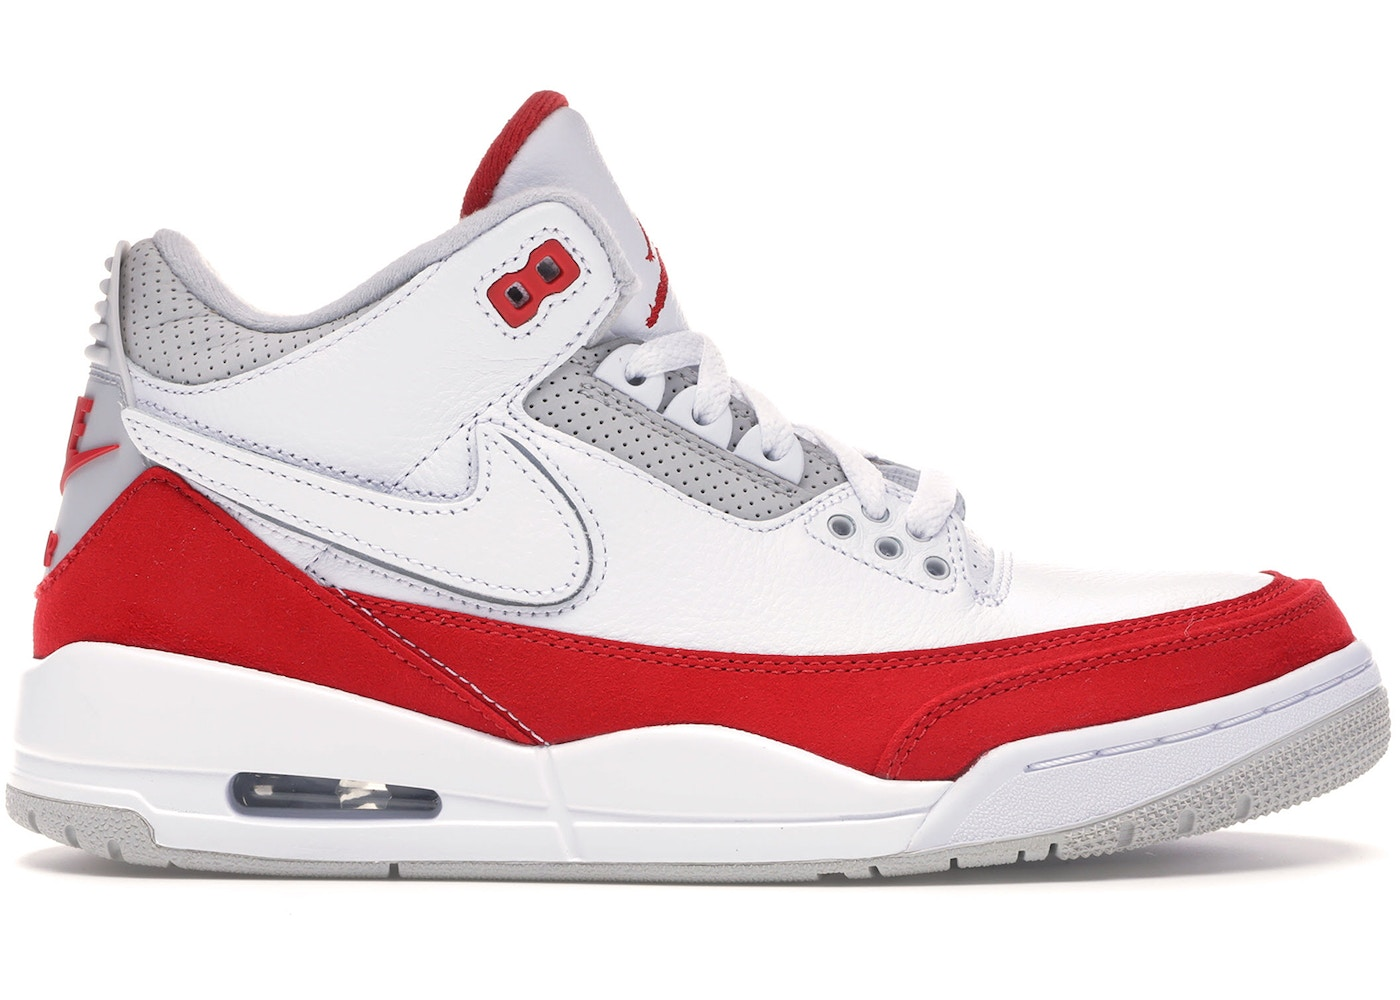 outlet store a38a7 a2a23 Buy Air Jordan 3 Shoes & Deadstock Sneakers